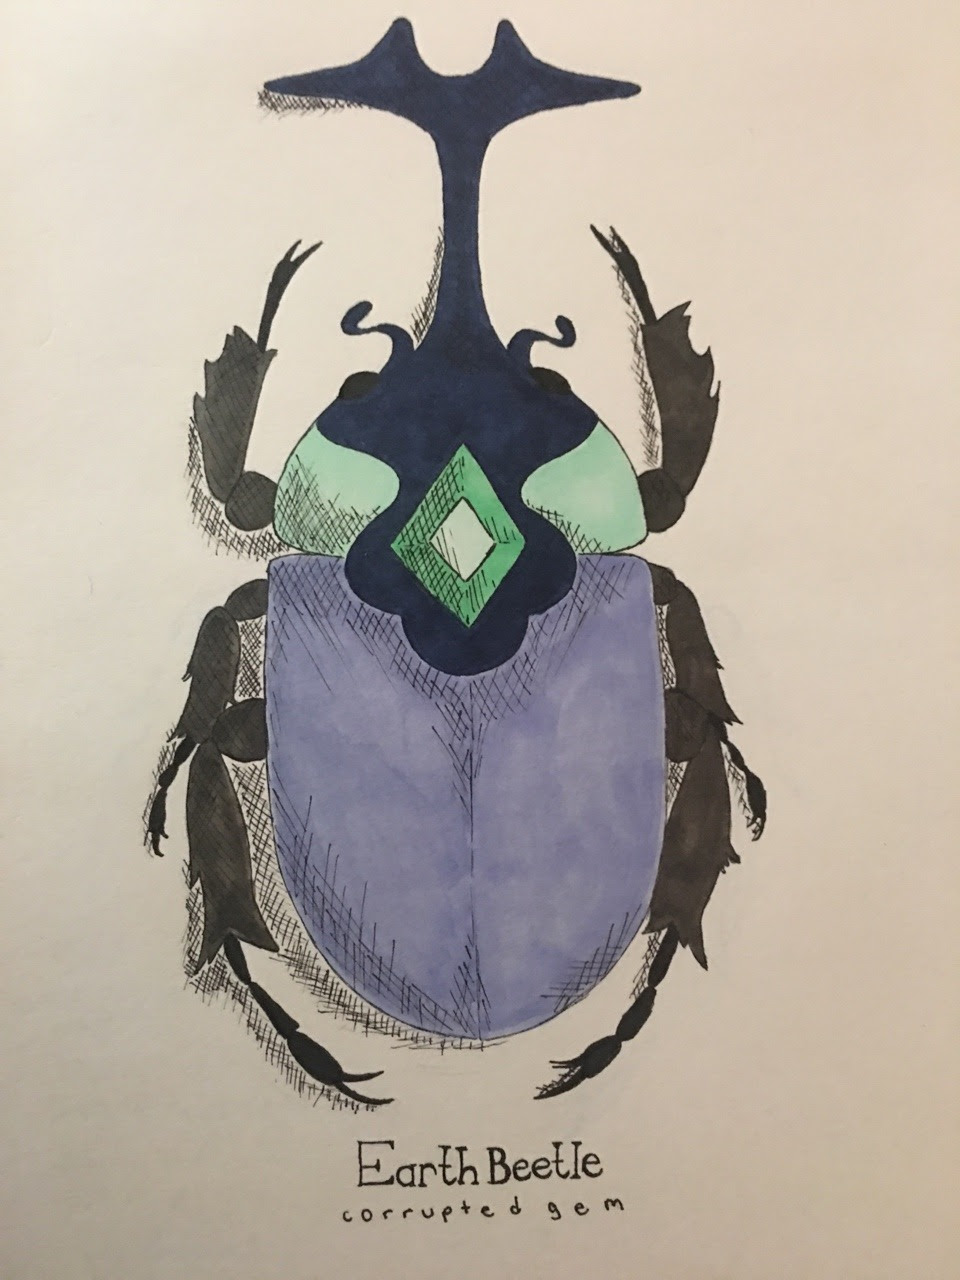 I really liked that the earth beetle and the heaven beetle were like the Japanese horned beetle, I just really love beetles in general